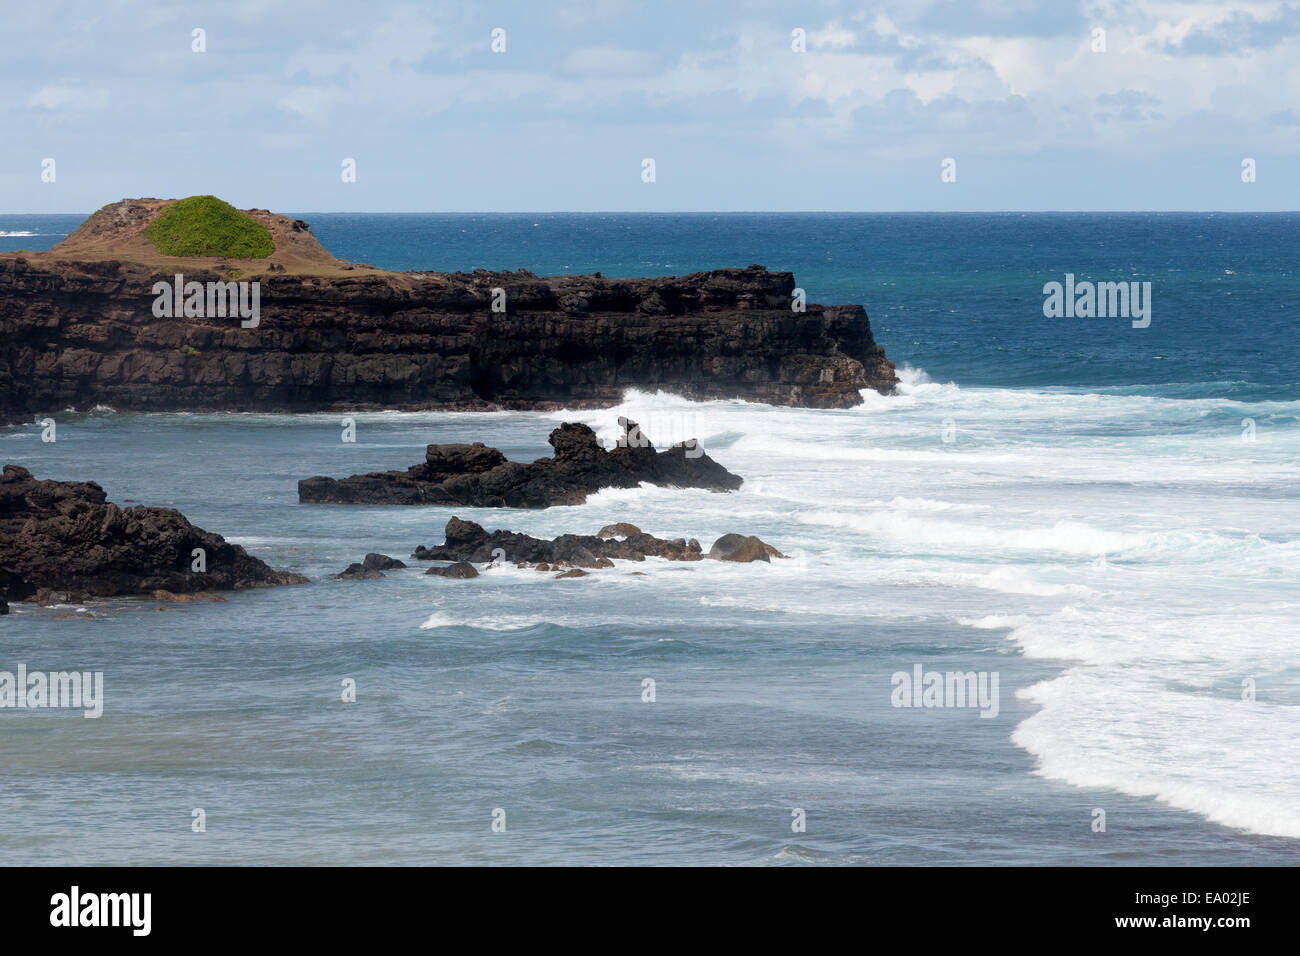 The rocky coast at Le Gris Gris beach, south Mauritius - Stock Image